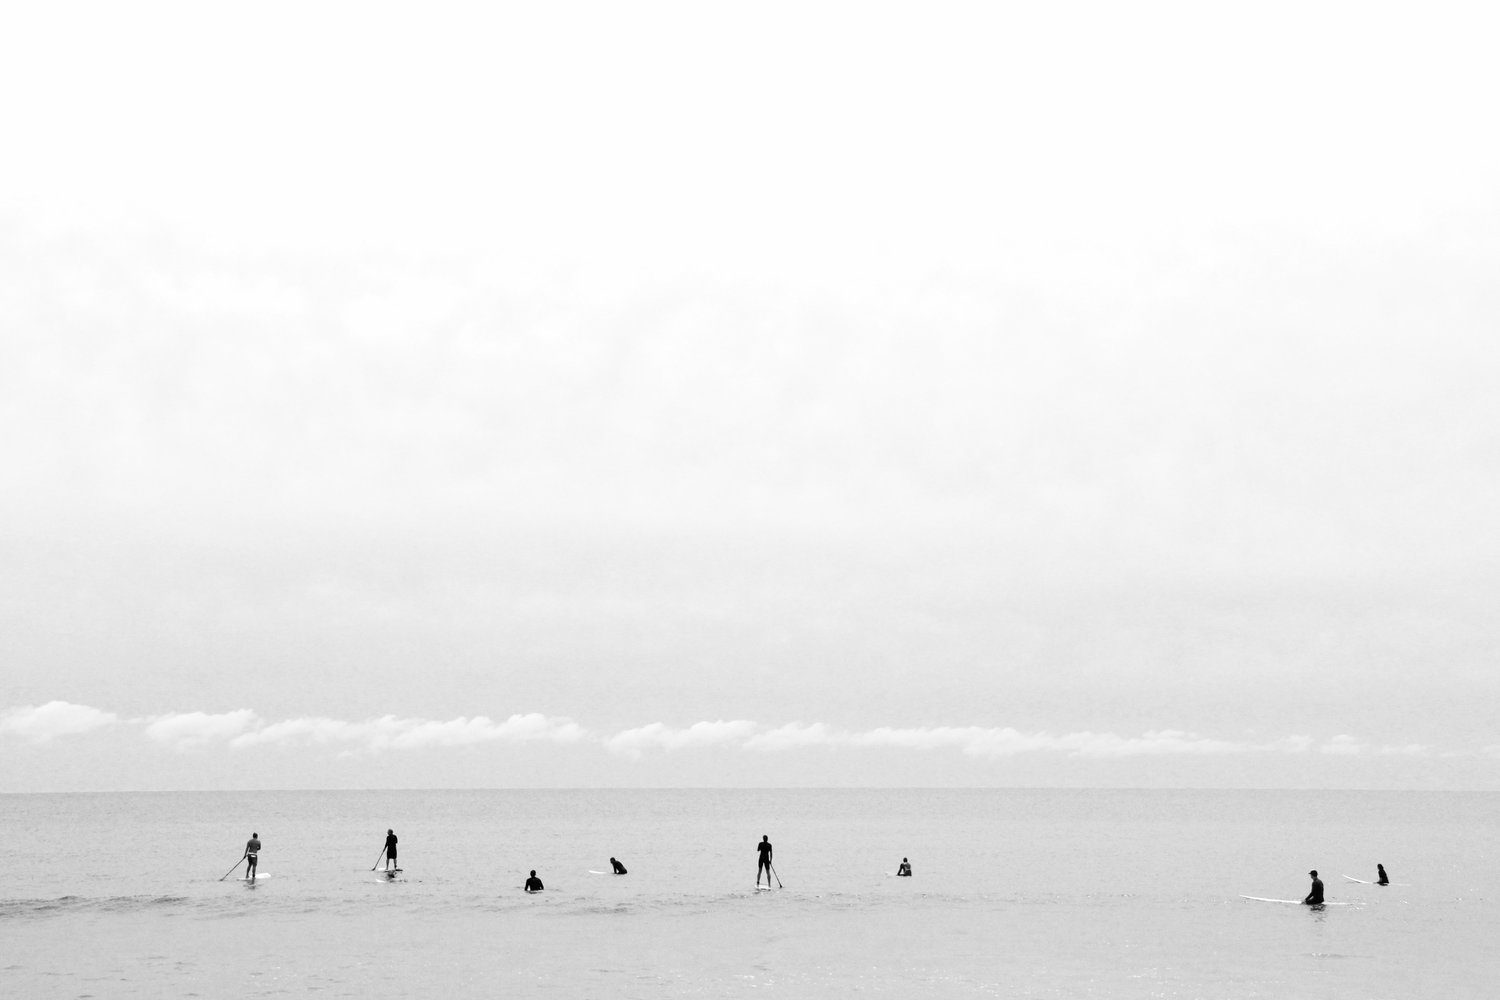 """You can feel the anticipation from the surfers as they await the incoming waves,"" says Marttila of her work titled ""Lineup."""